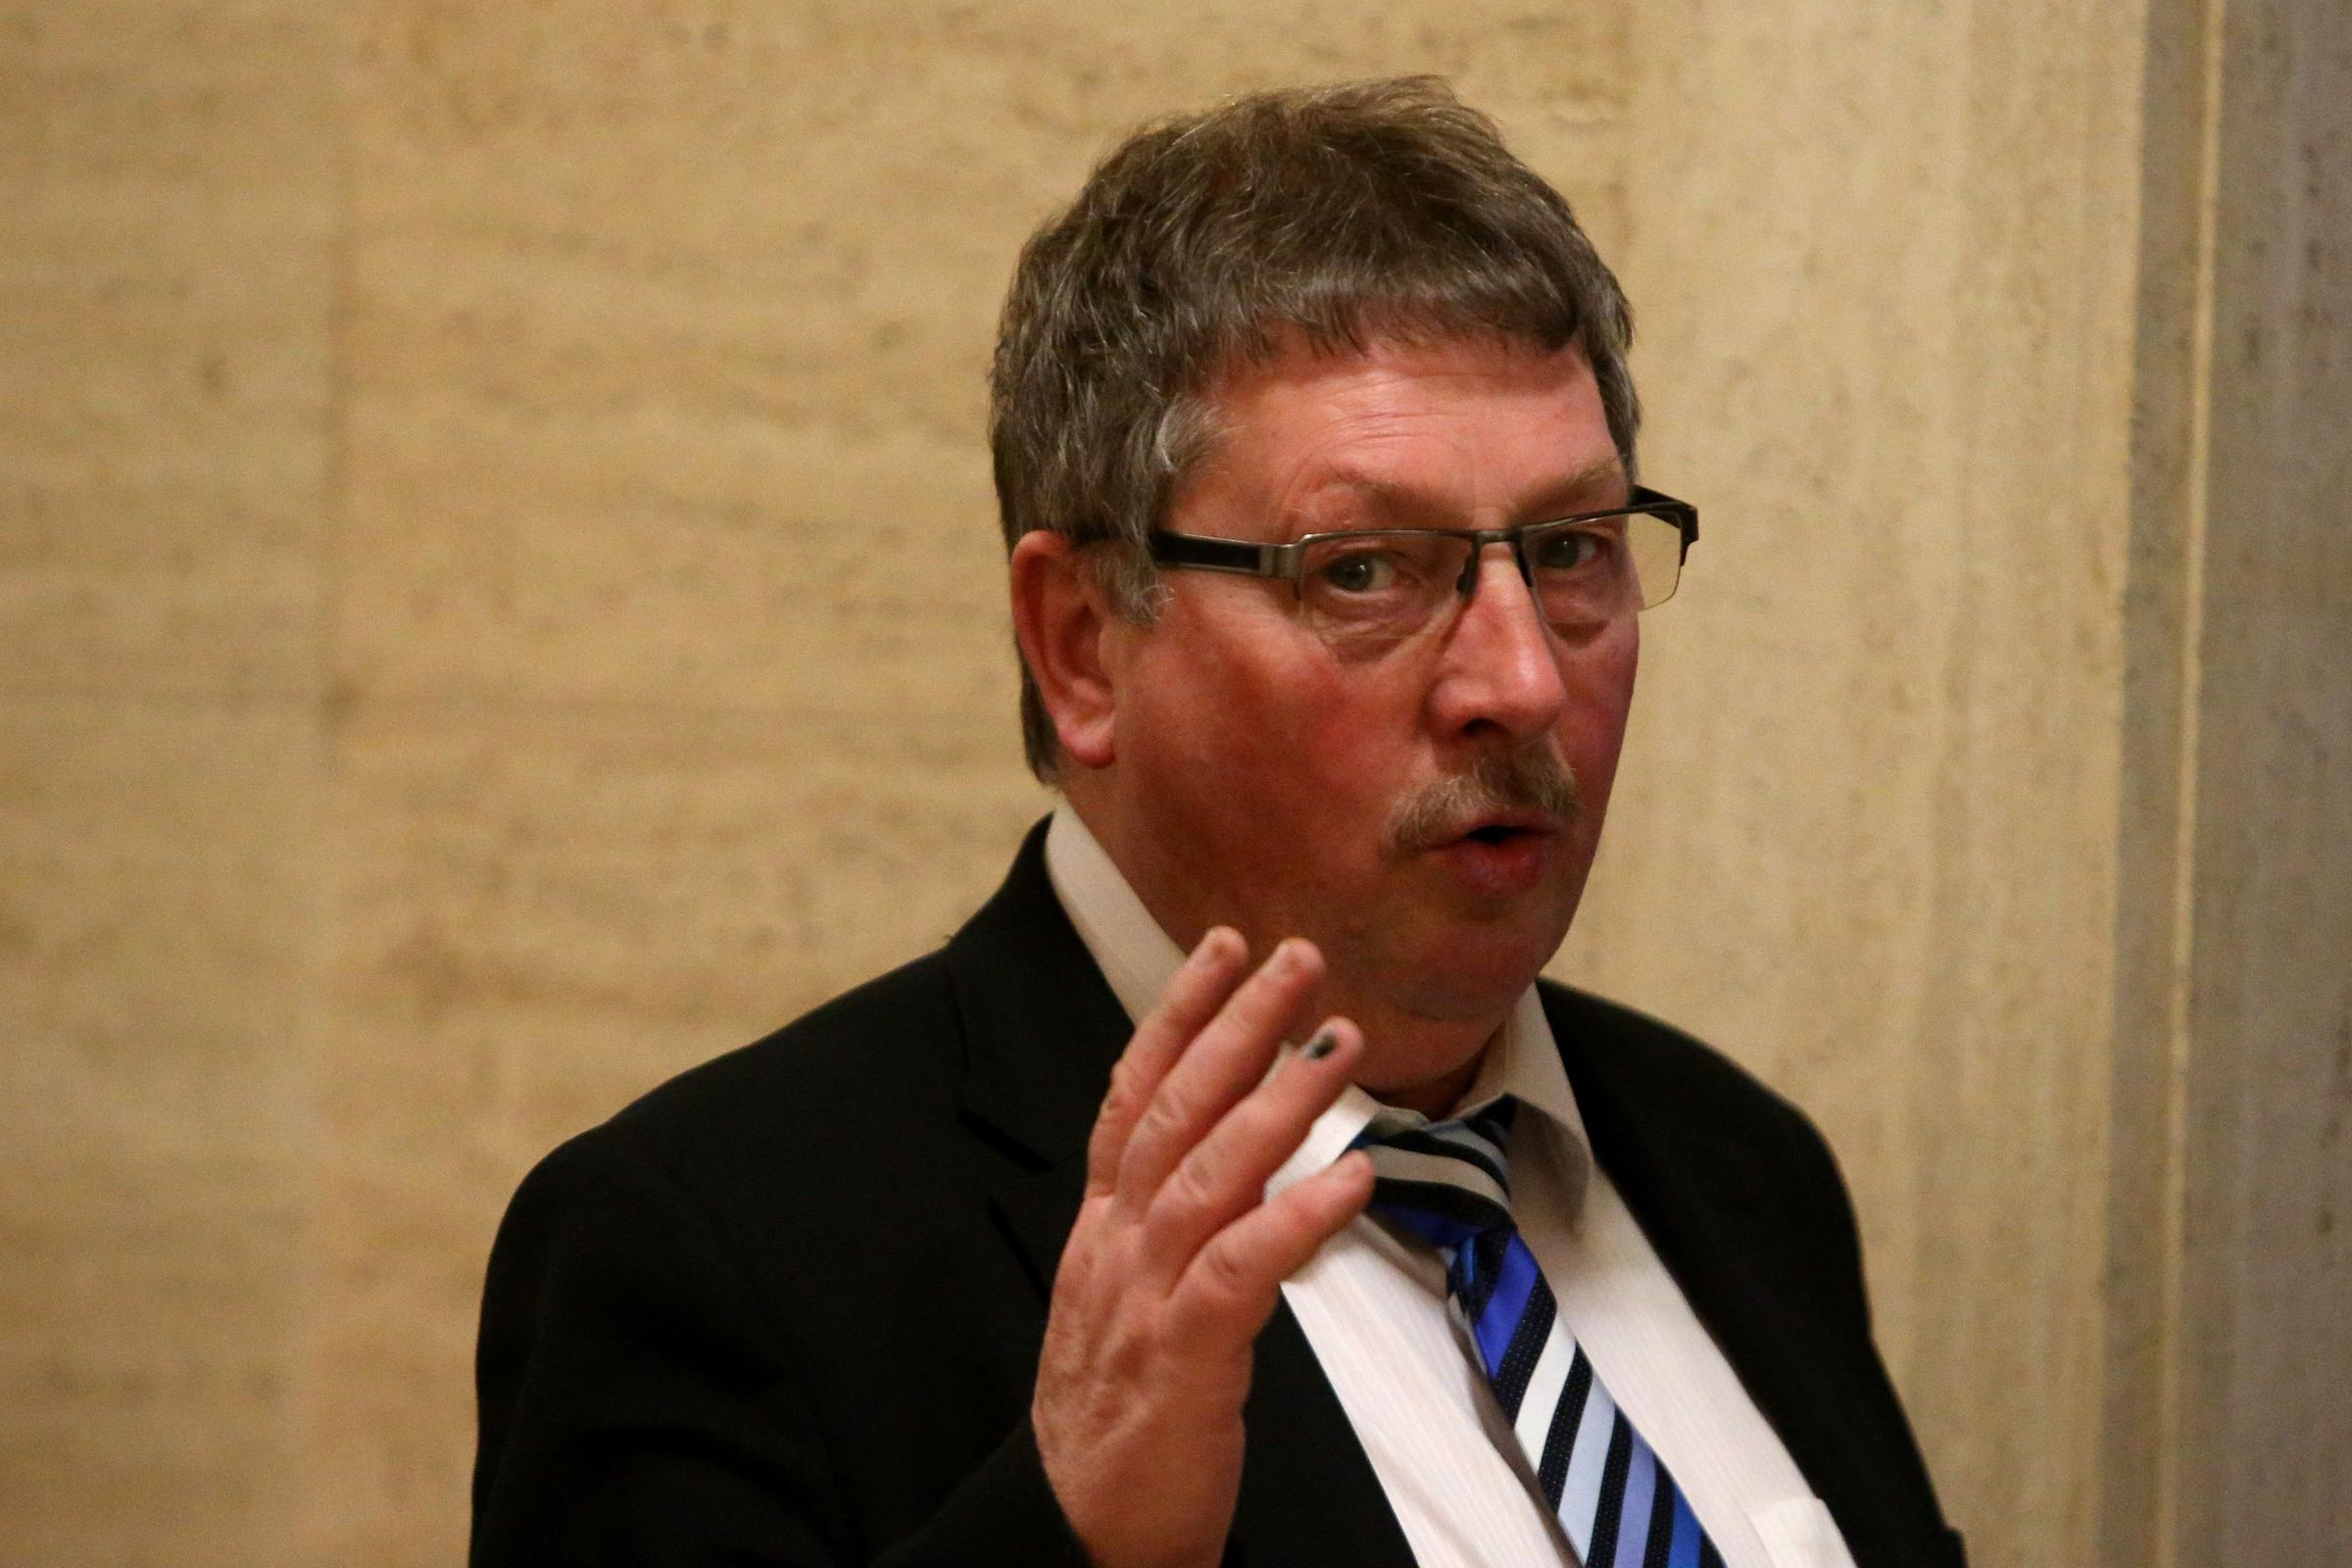 DUP MP Sammy Wilson criticised for 'punishment beating' Brexit comparison